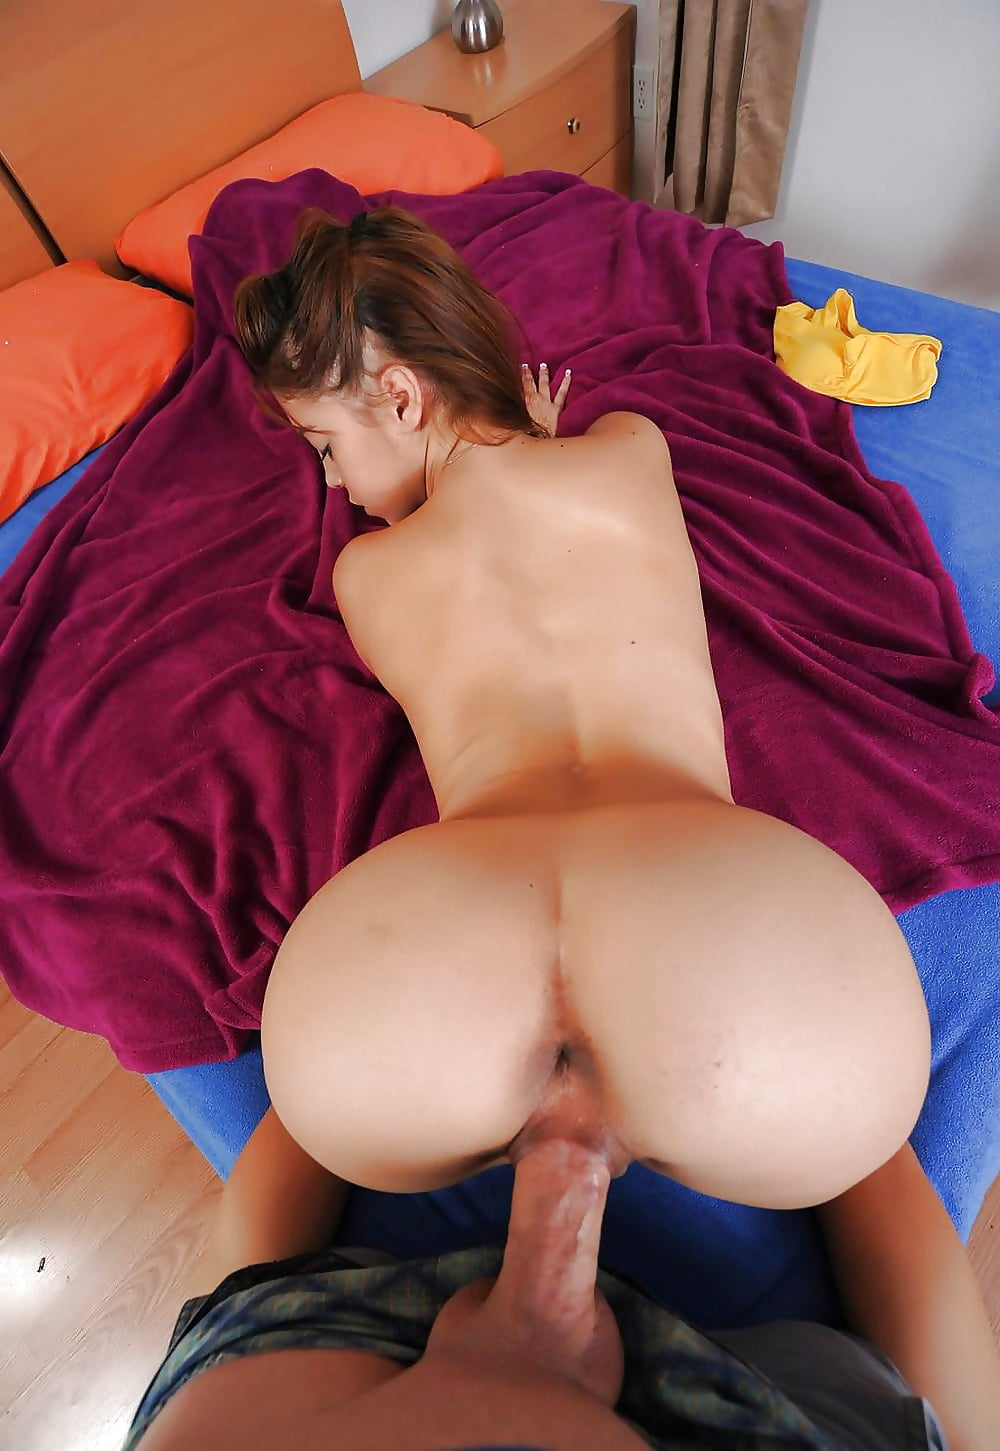 Sexy nudes best ass ever fuck photoshoot kendra